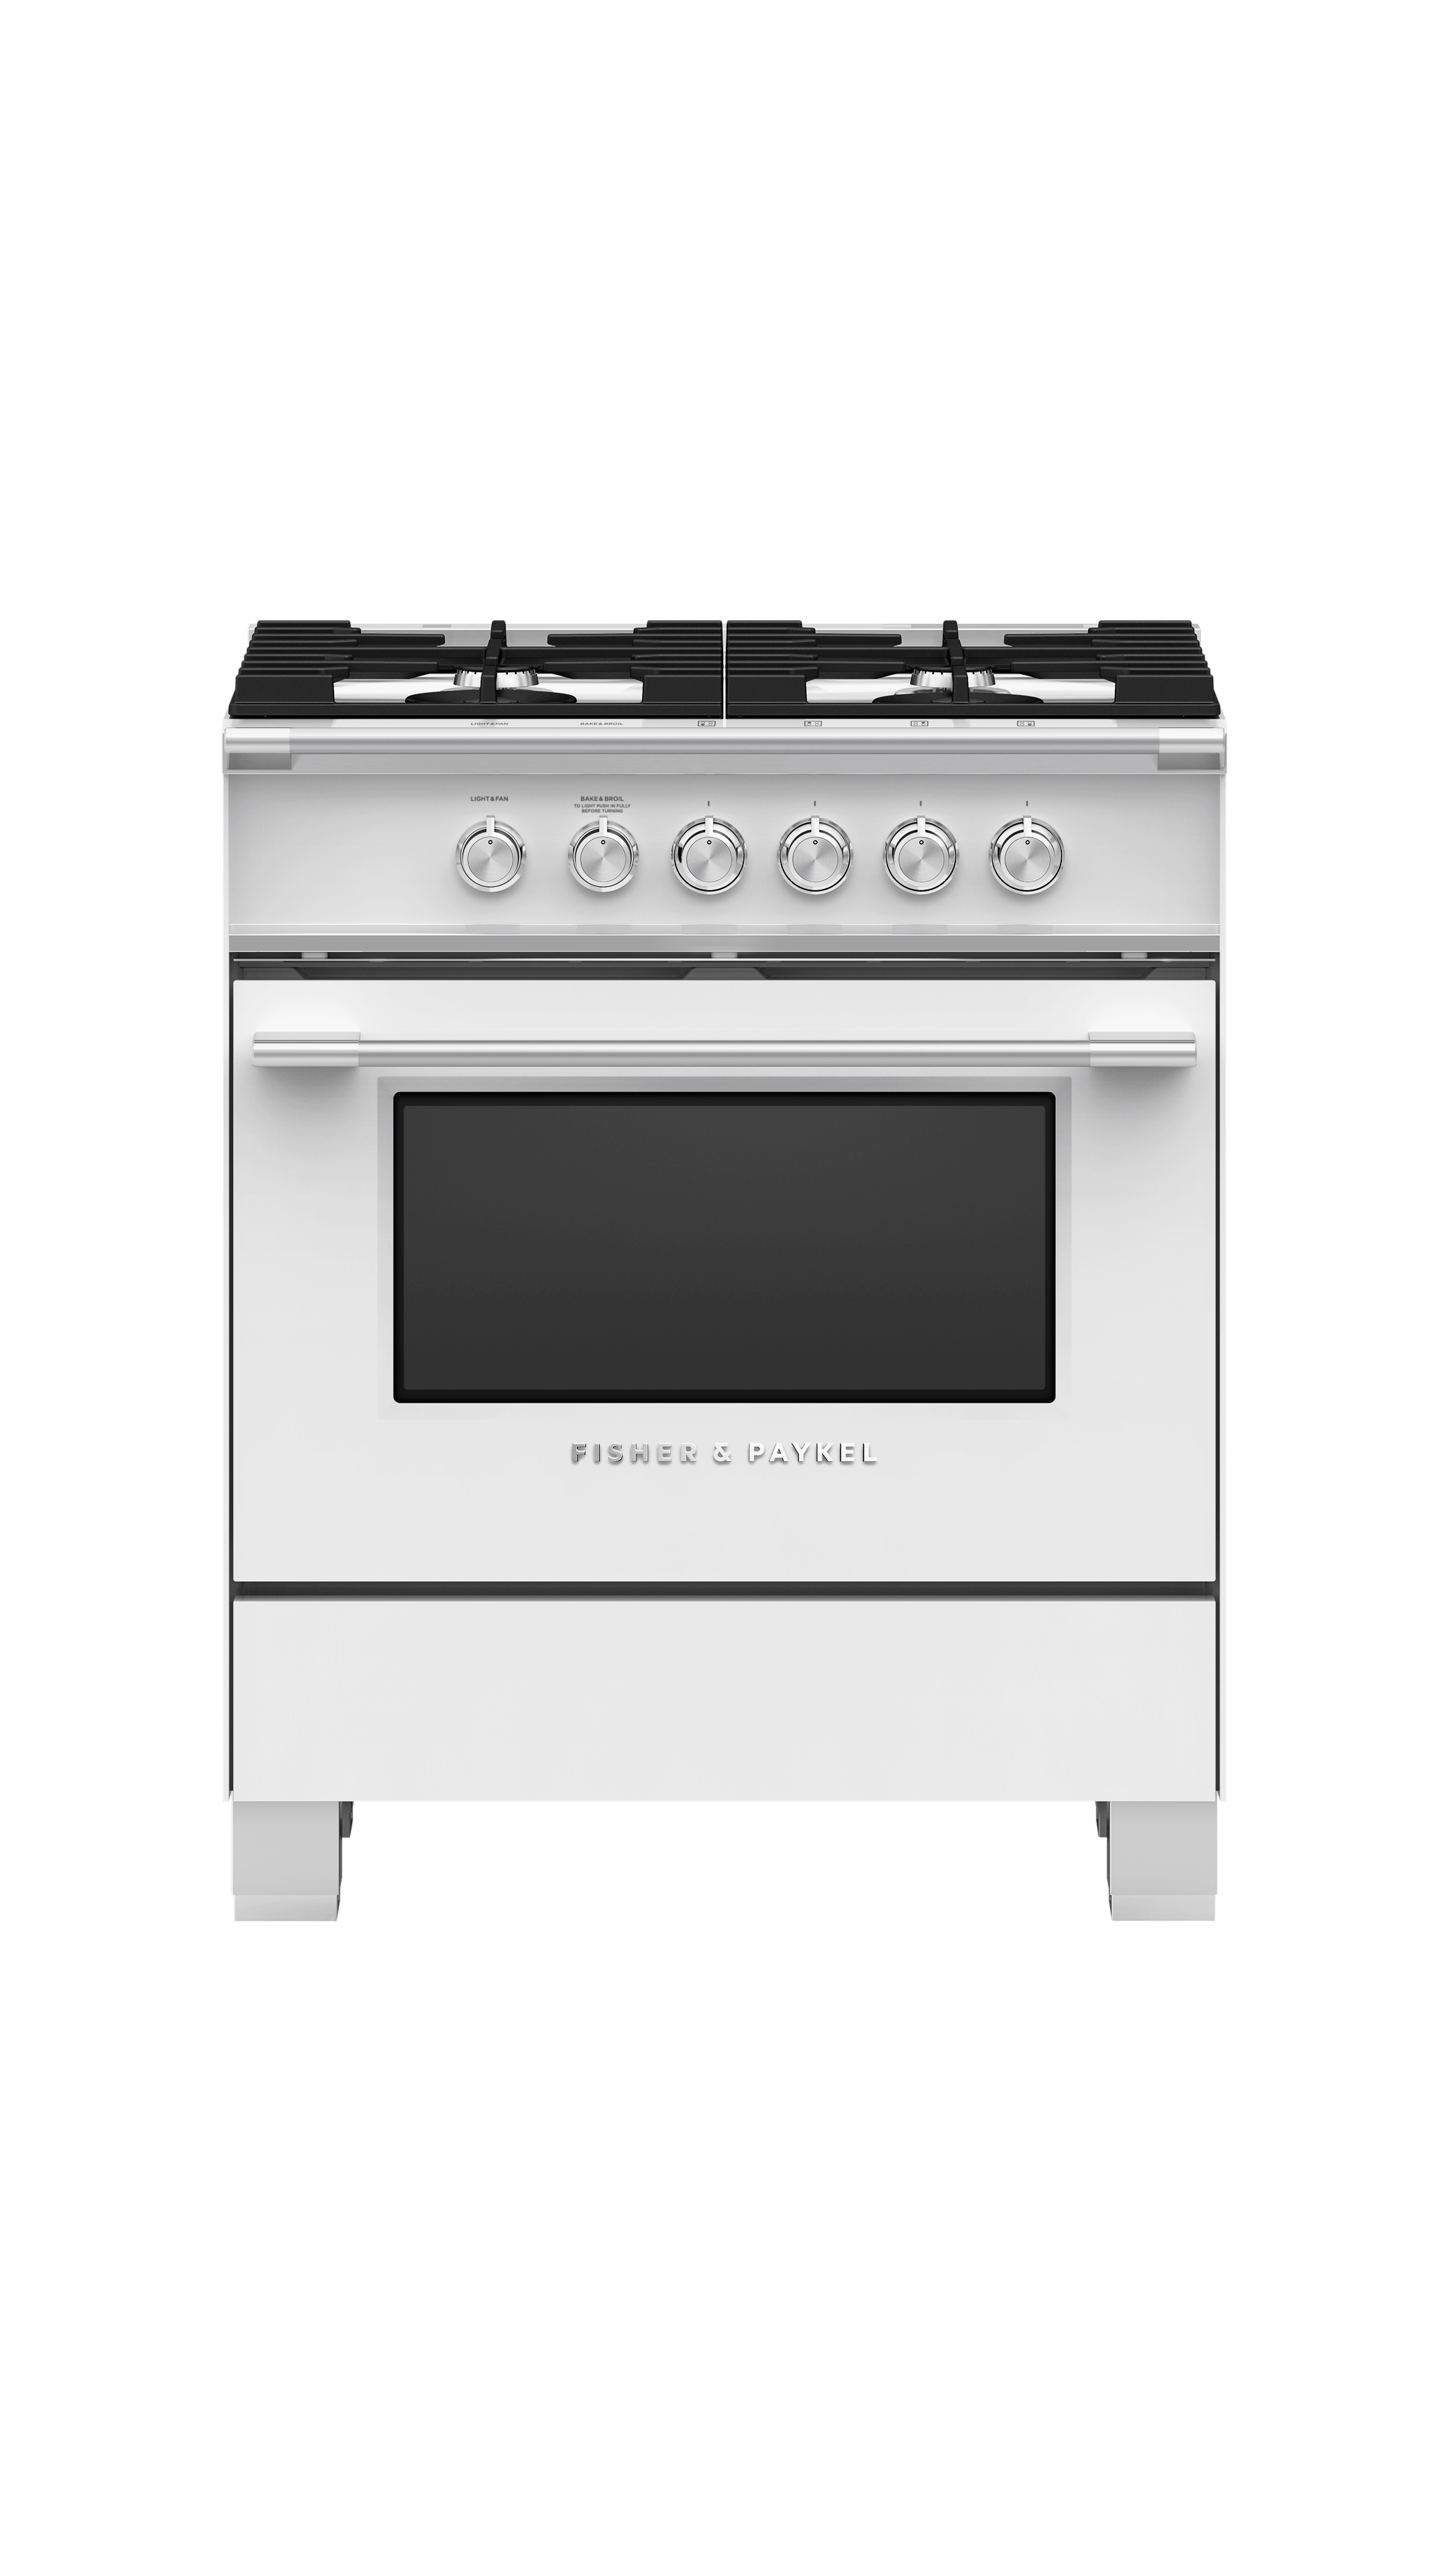 """Model: OR30SCG4W1 